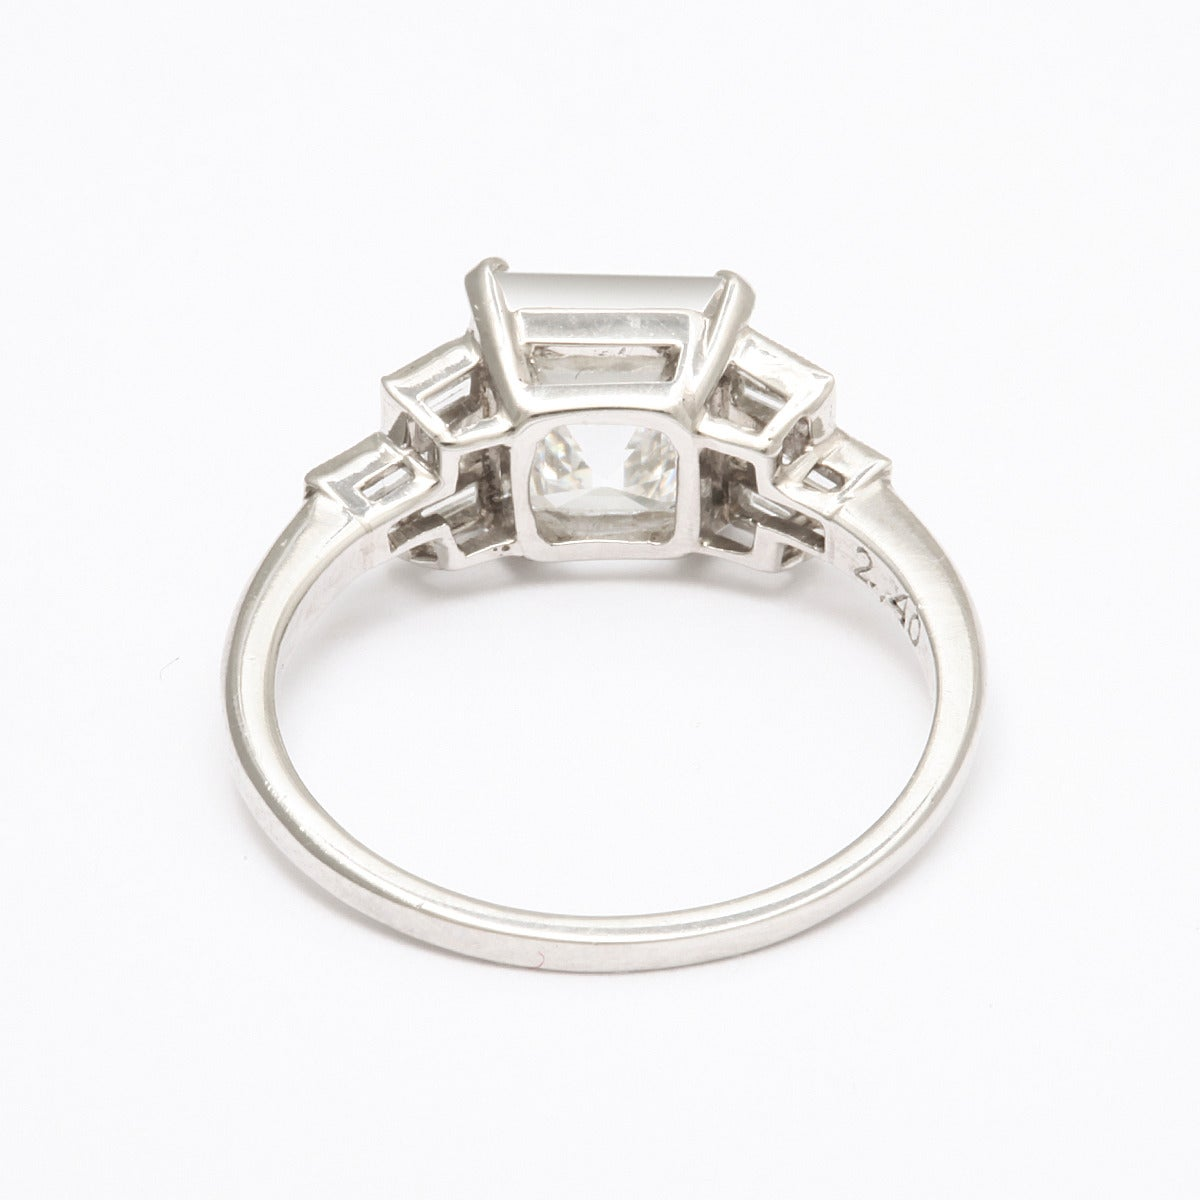 deco asscher cut cert platinum engagement ring for sale at 1stdibs